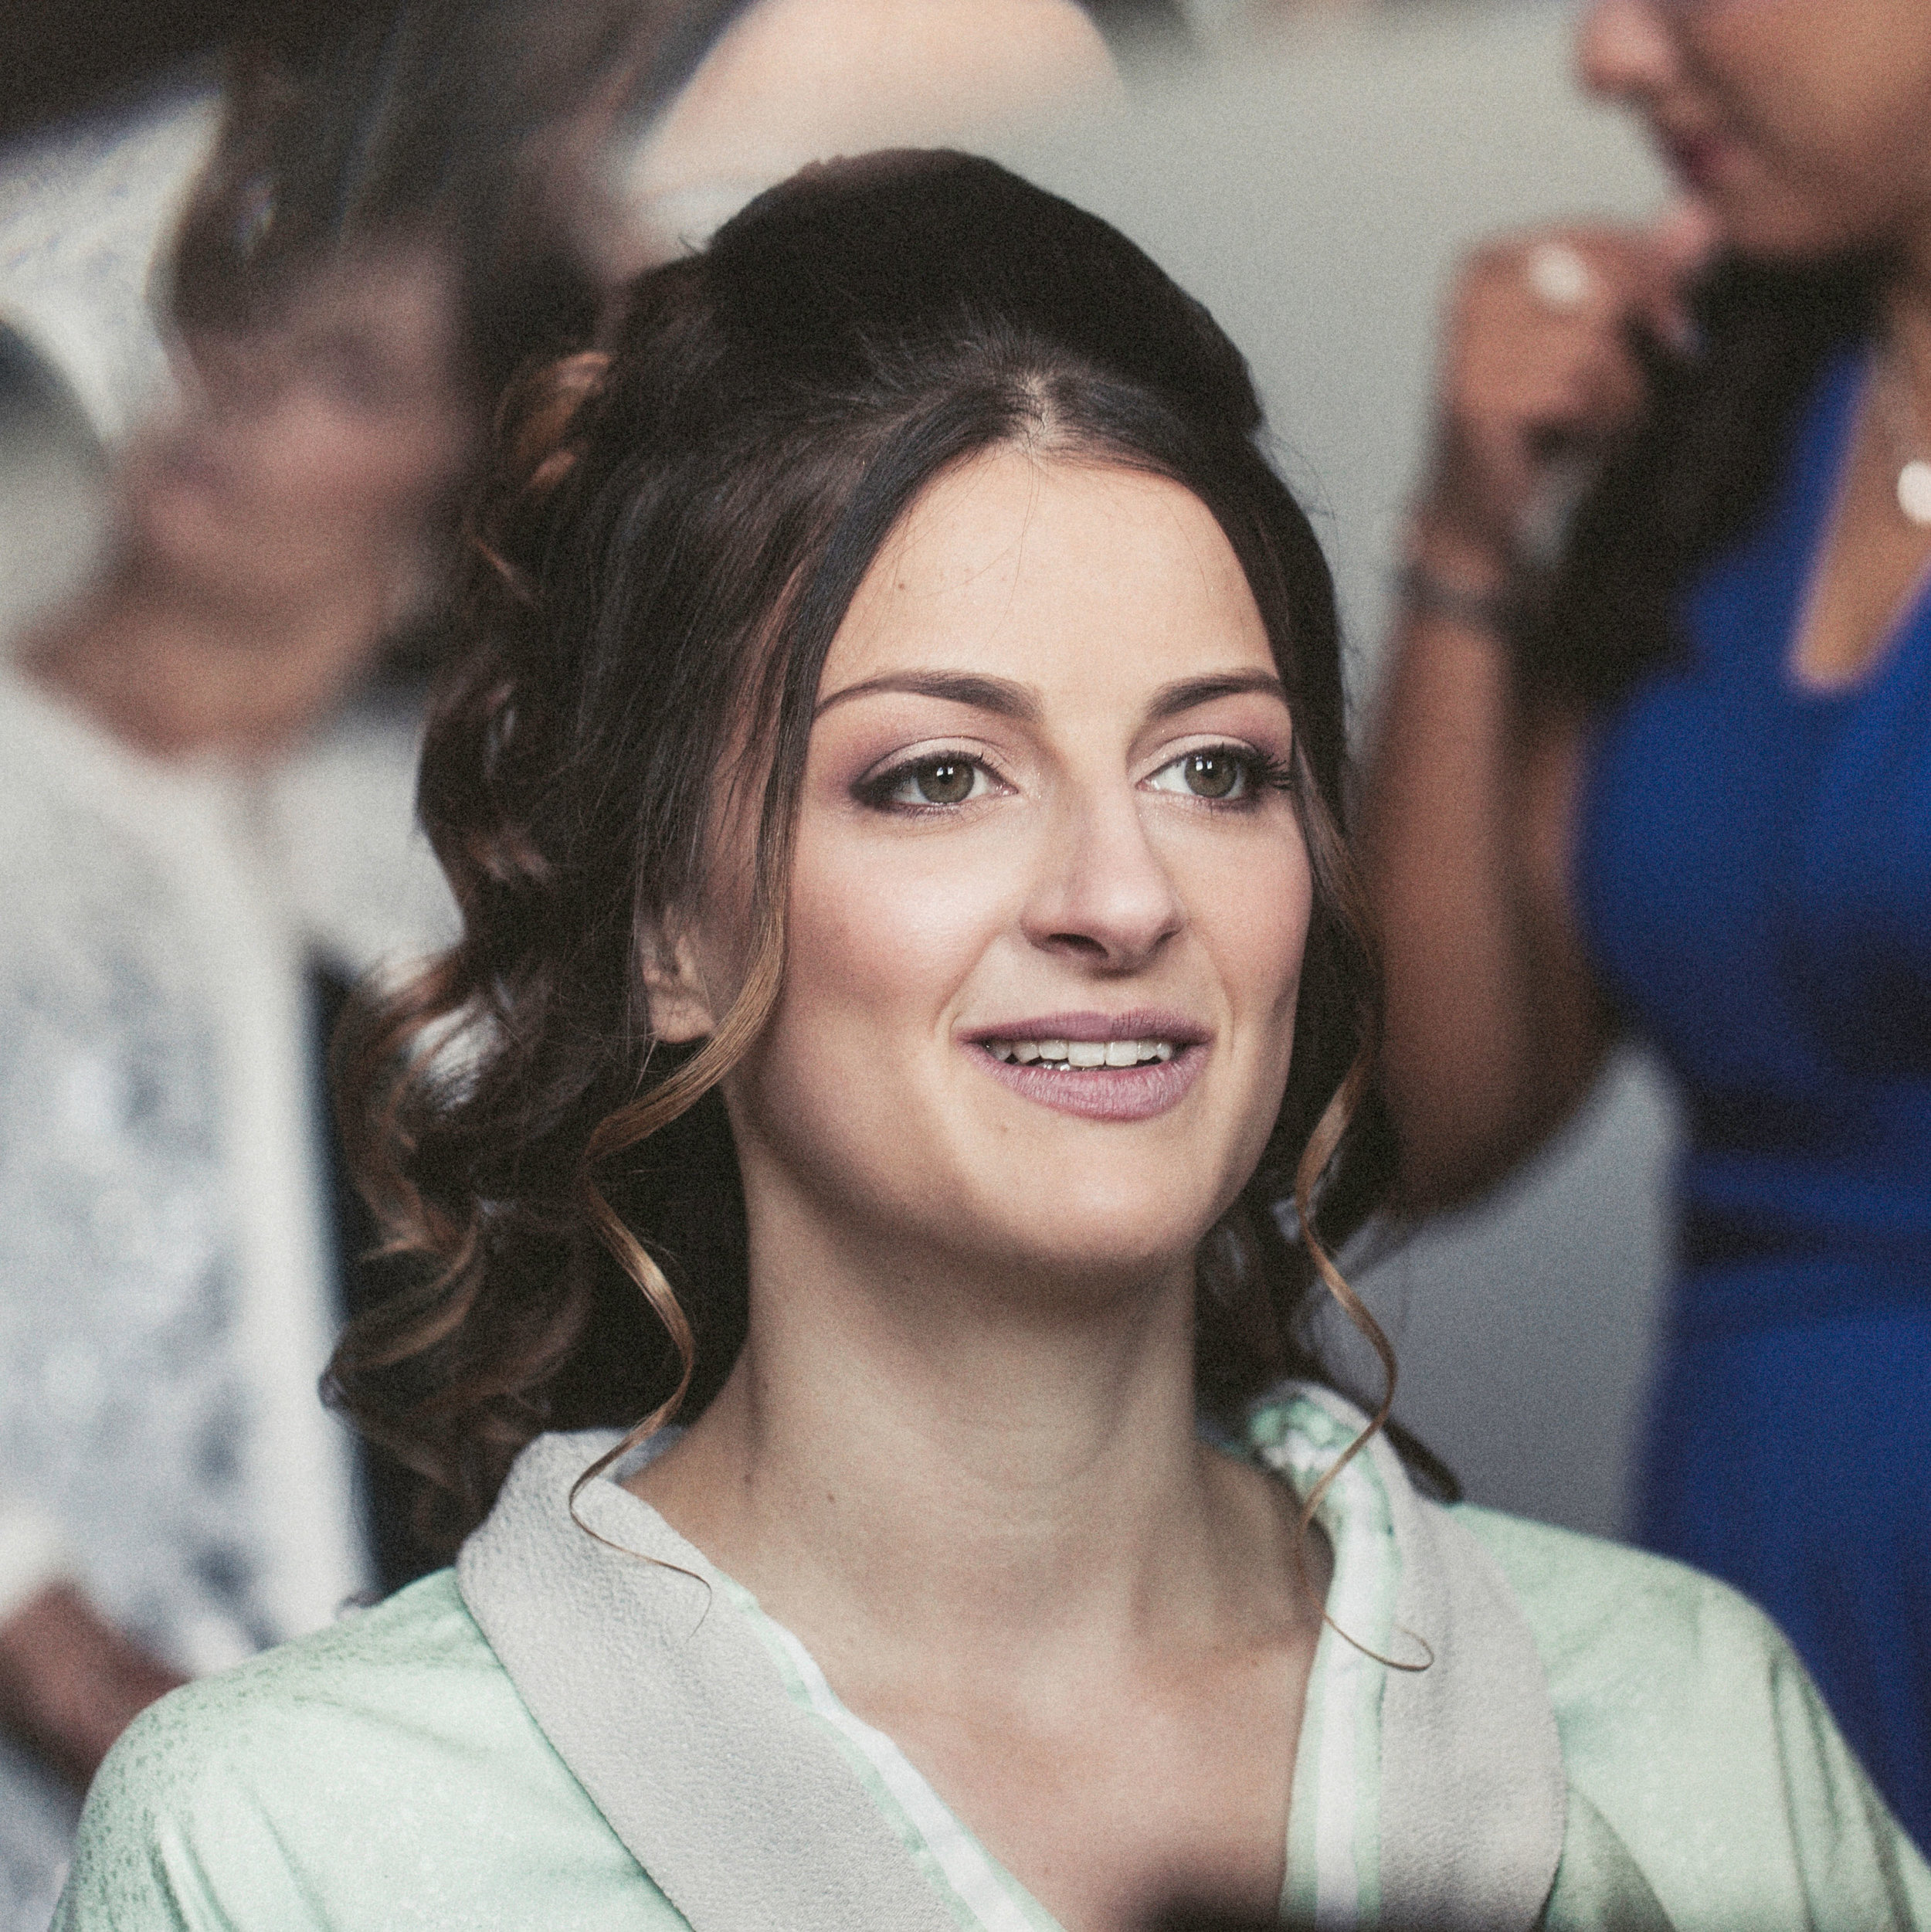 Emcheto makeup+maquilleuse+Grenoble+Isère+Rhone Alpes+mariage.jpg